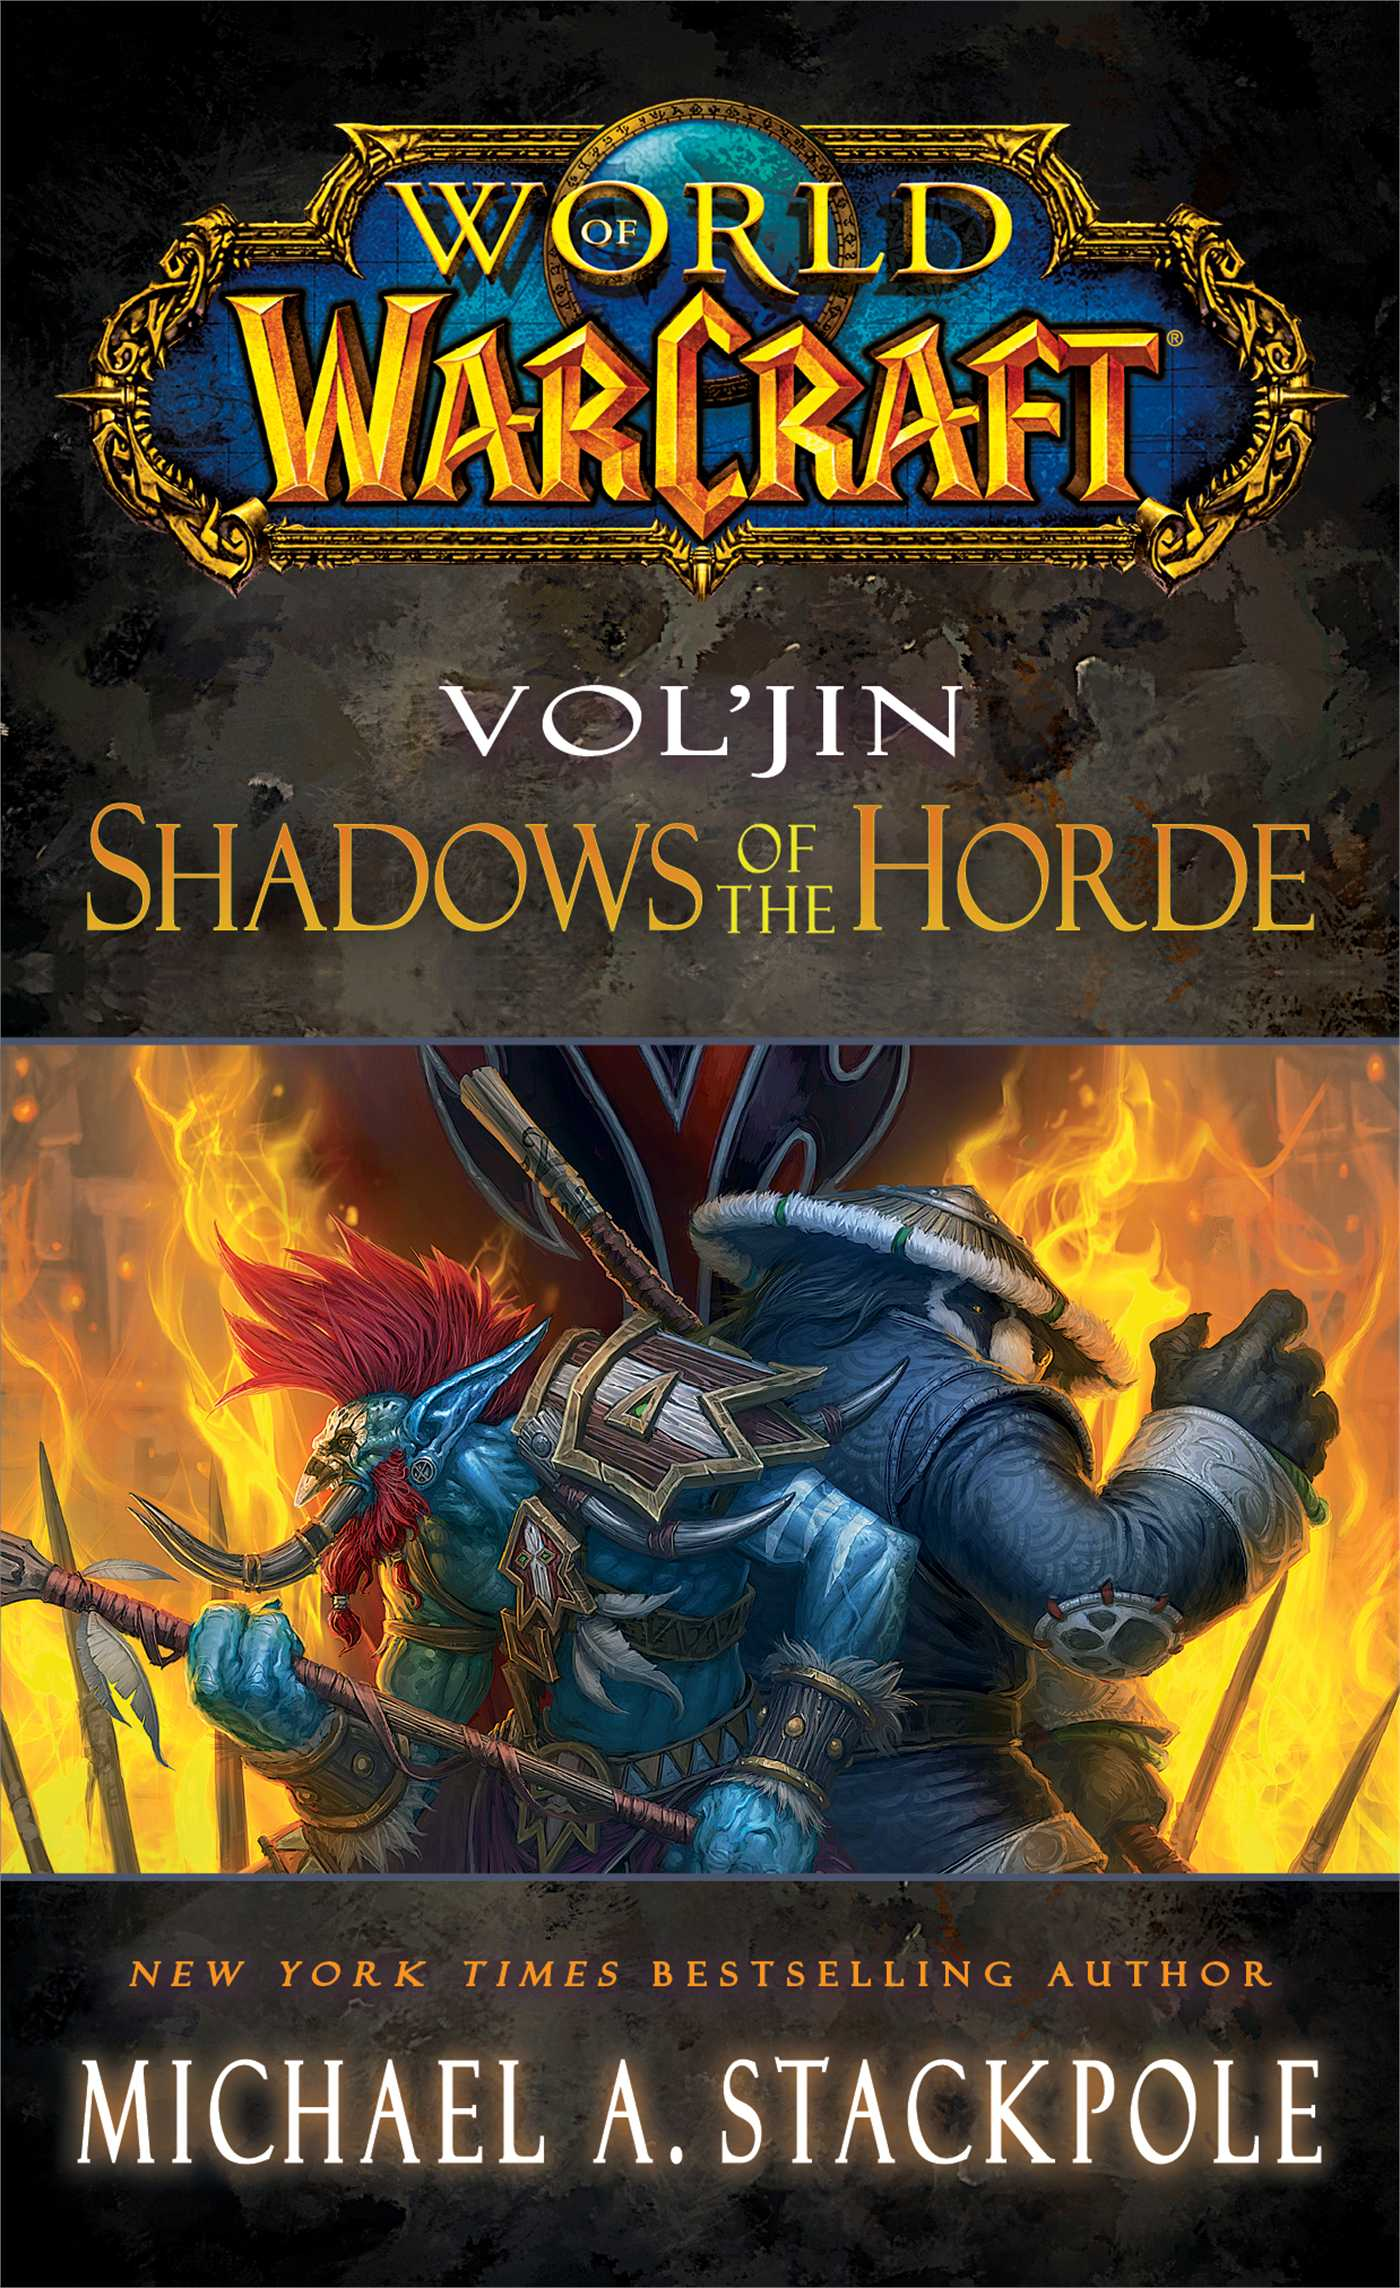 World-of-warcraft-voljin-shadows-of-the-horde-9781476702971_hr